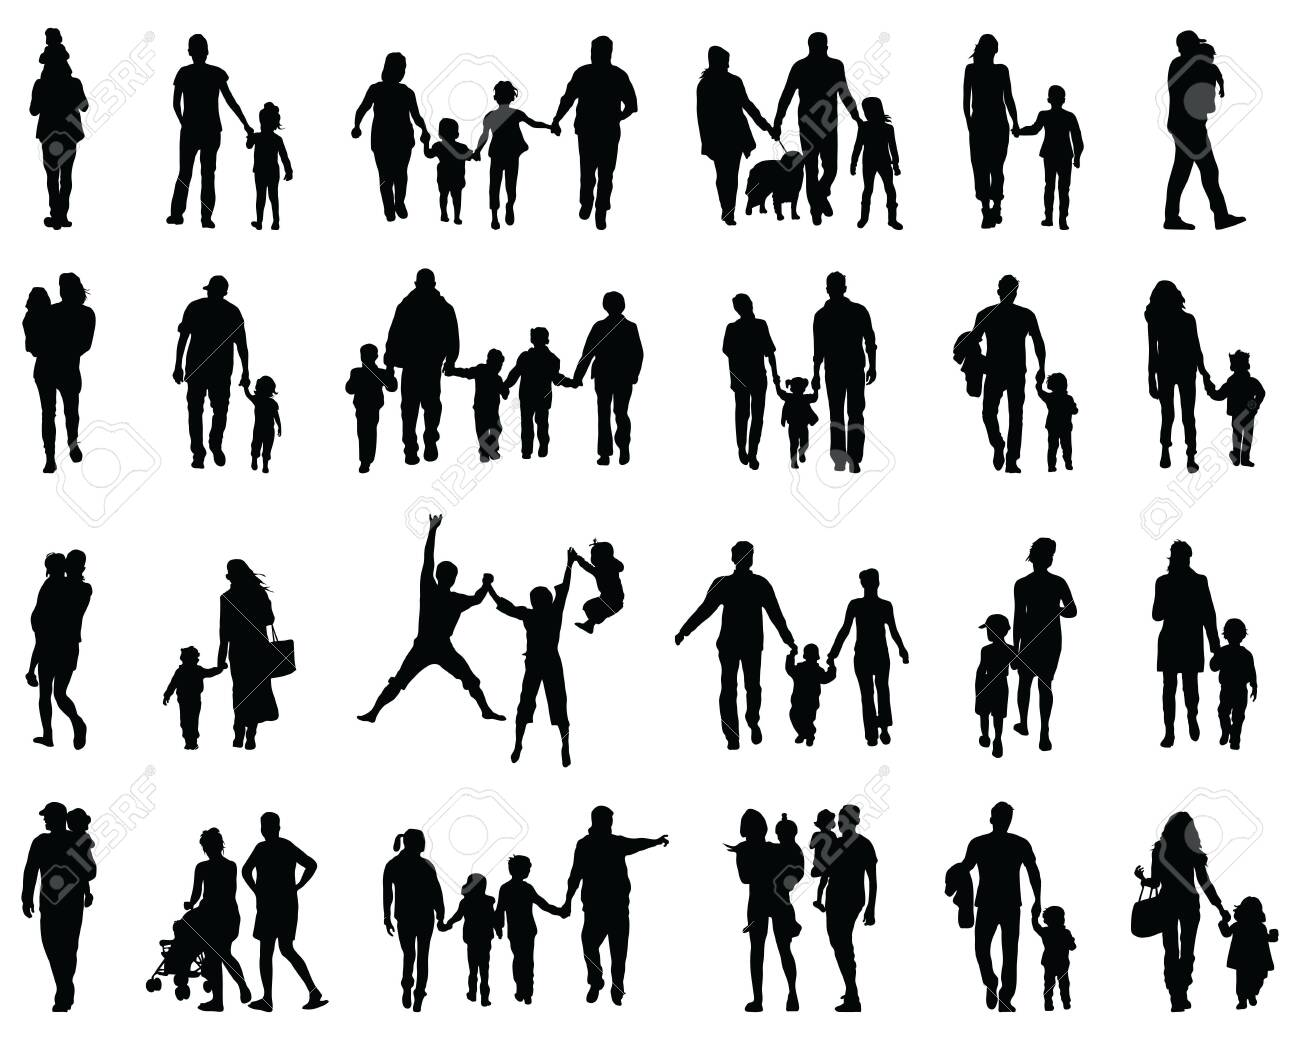 Black silhouettes of families in a walk on a white background - 141610803